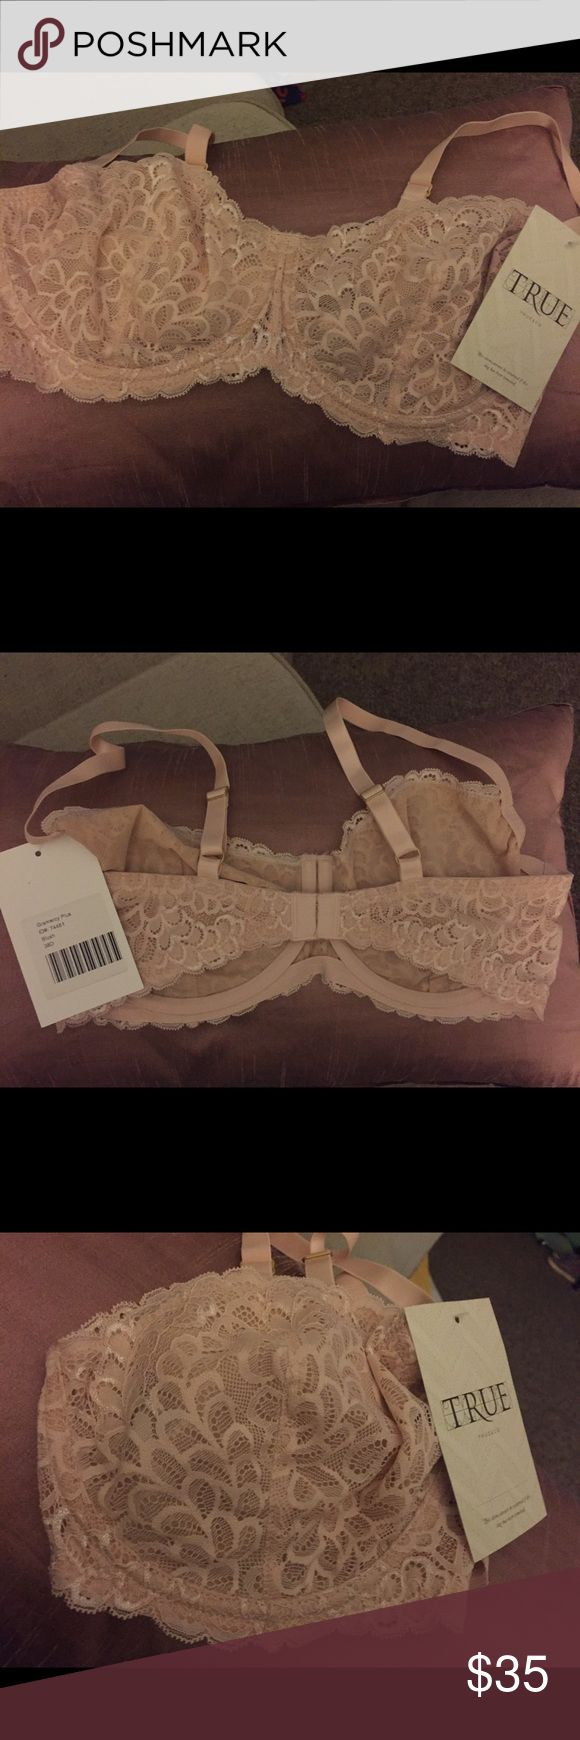 True & Co NWT Balconette Bra! Brand new with tags! Gramercy Balconette bra from True & Co. This bra is beautiful and features an unlined look with supportive underwire. Size 38 D. Color is a stunning blush. true & co Intimates & Sleepwear Bras